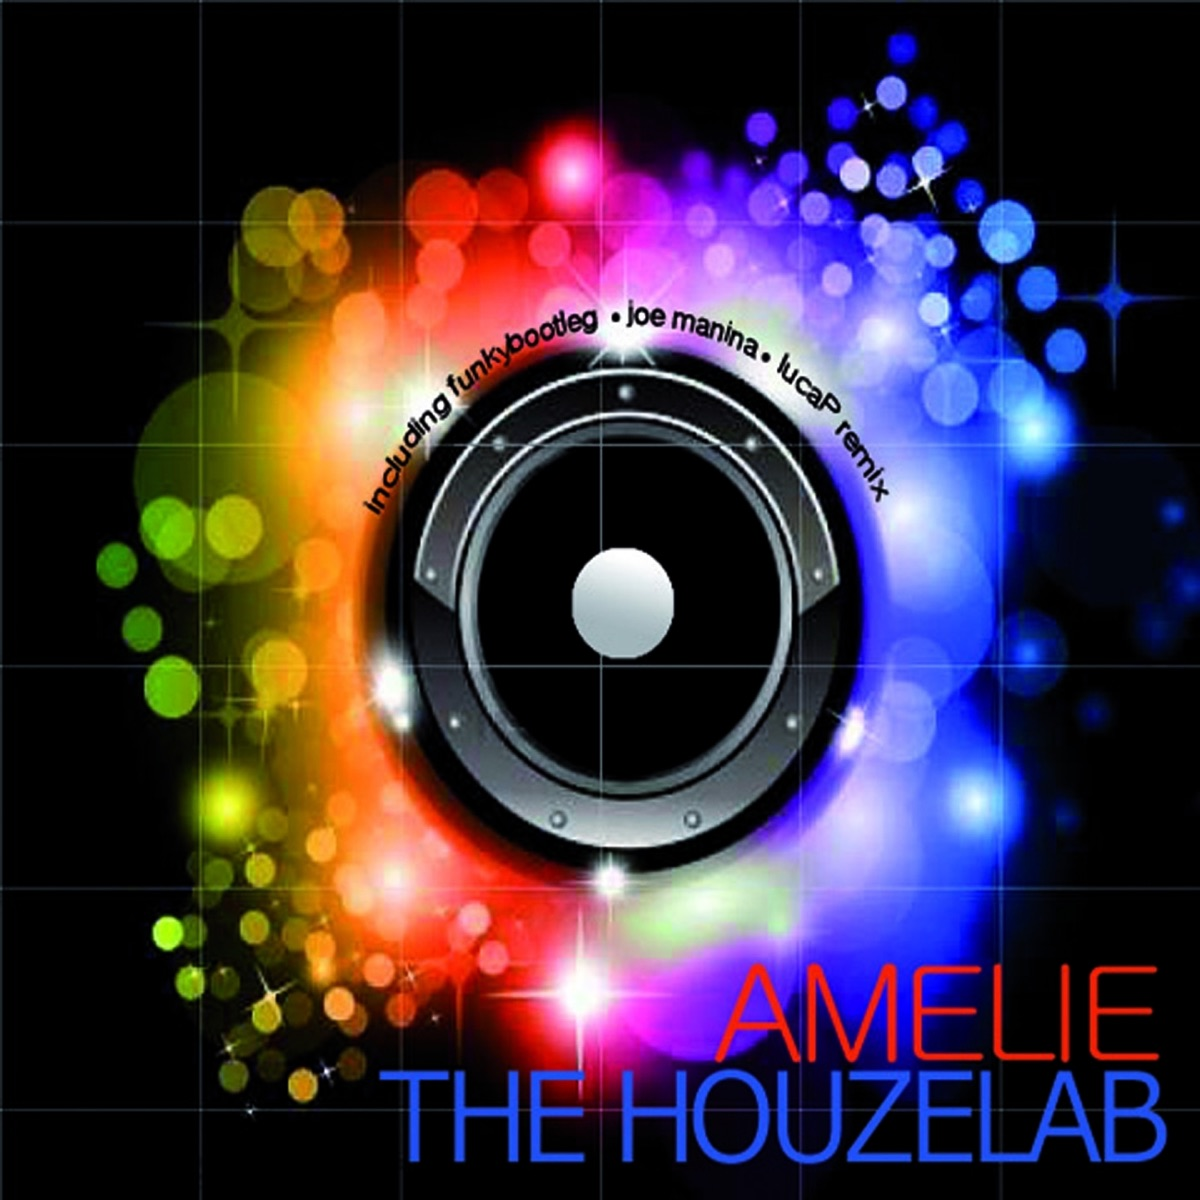 Amelie The Houzelab CD cover